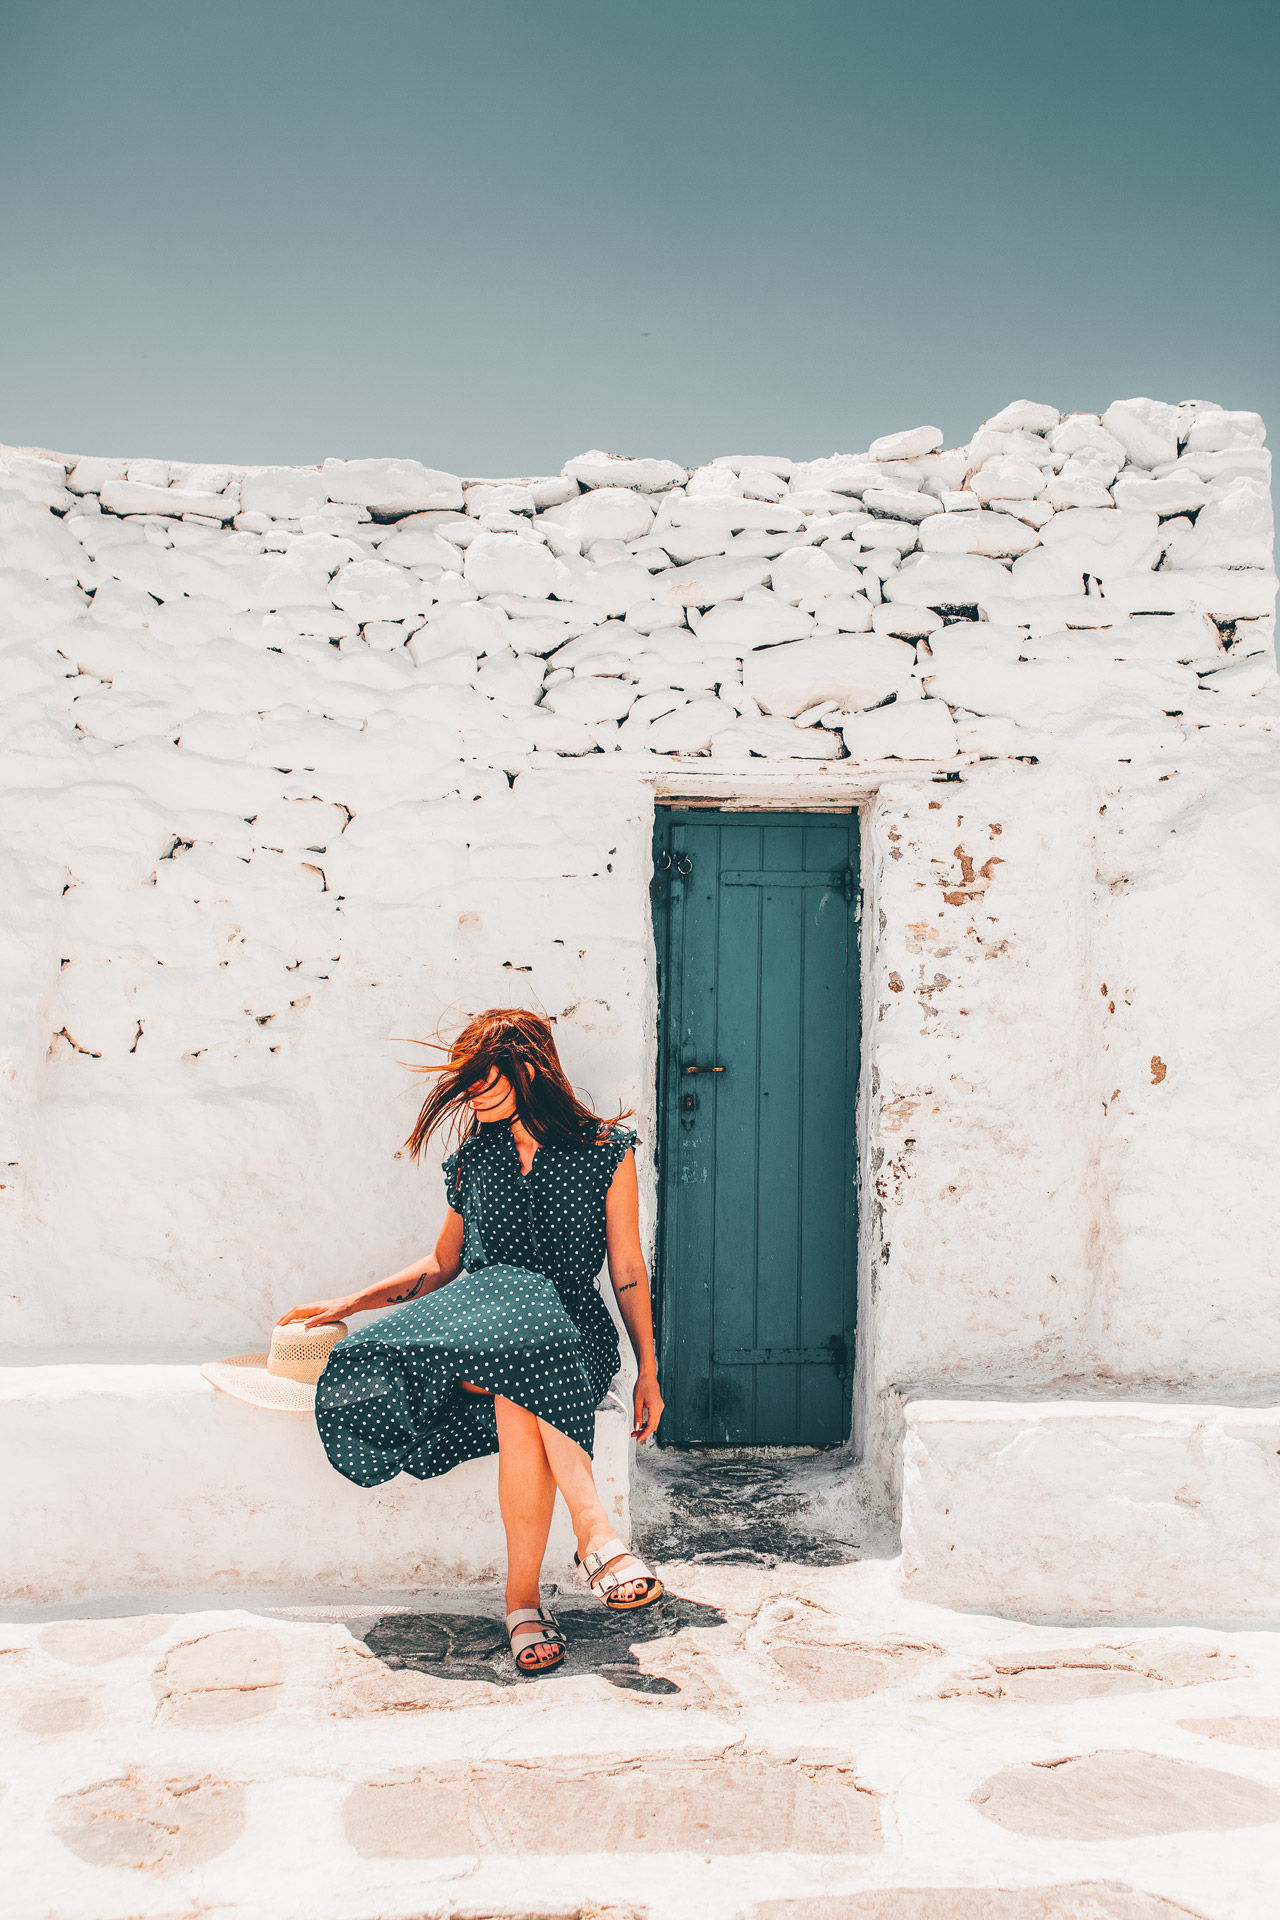 Behind the Instagrammable beauty of Mykonos' main town beats a strong, authentic heart that you'll adore discovering